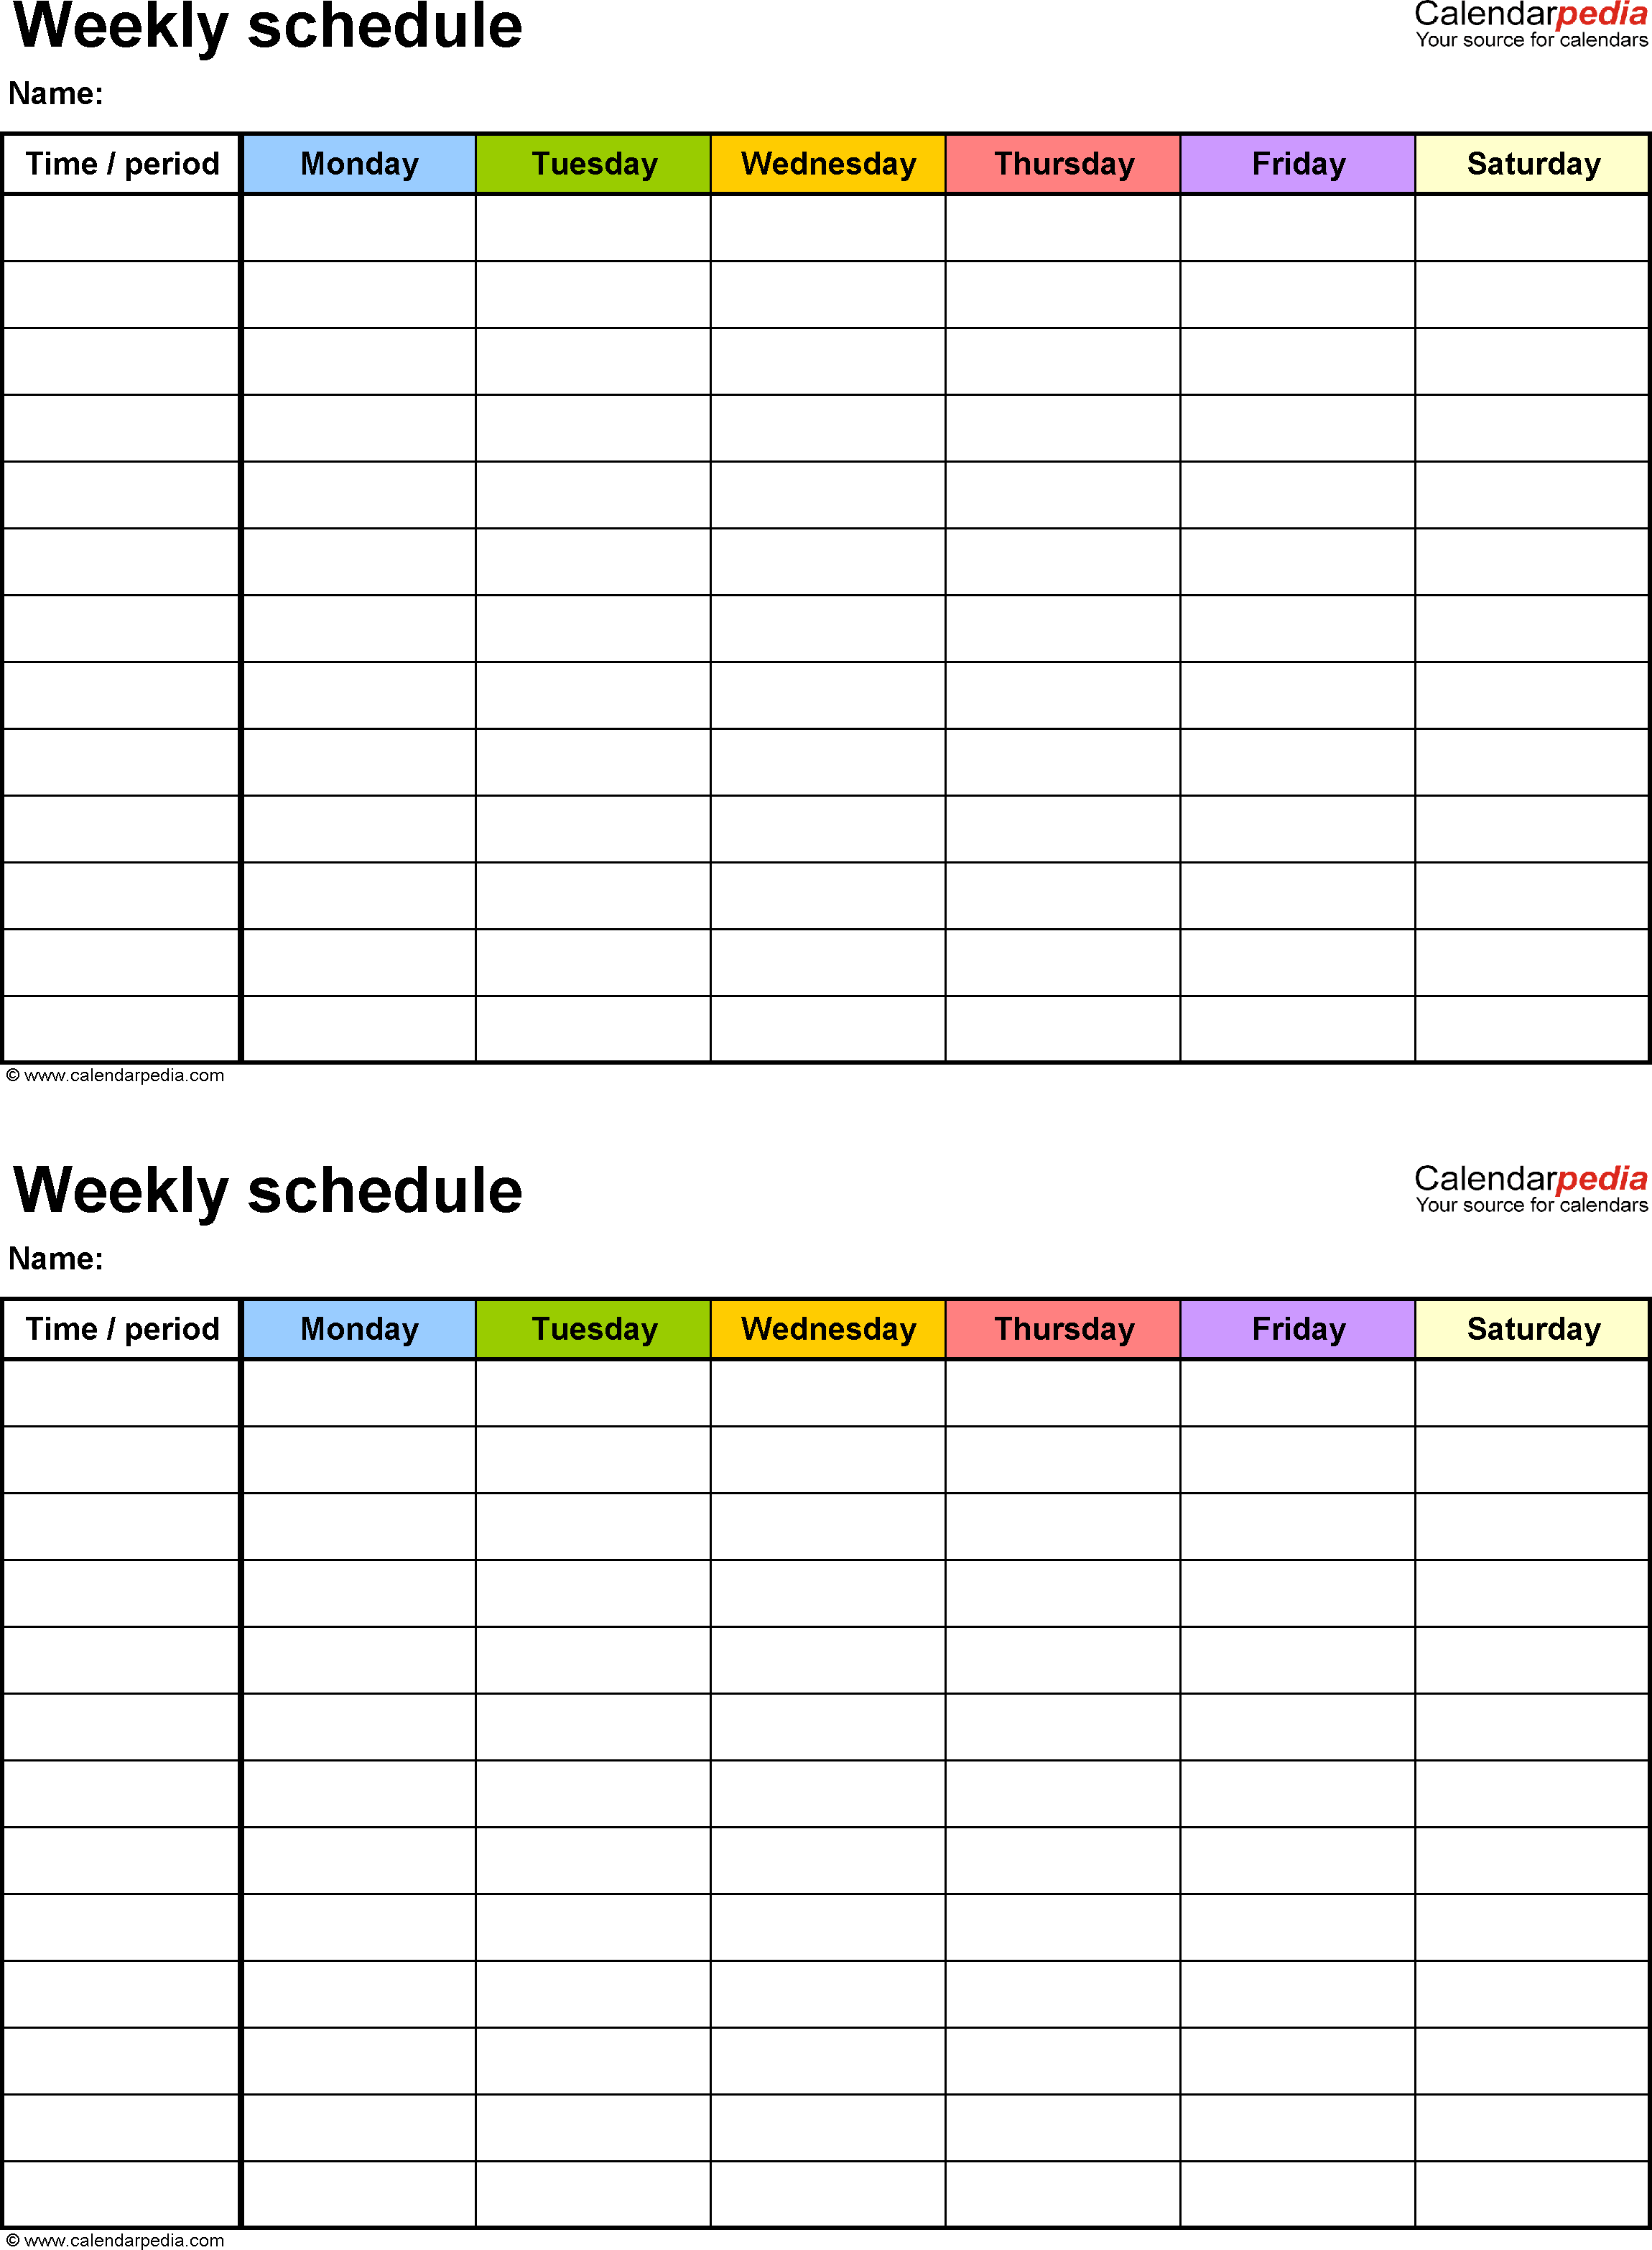 weekly schedule template for word version 9  2 schedules on one page  portrait  monday to